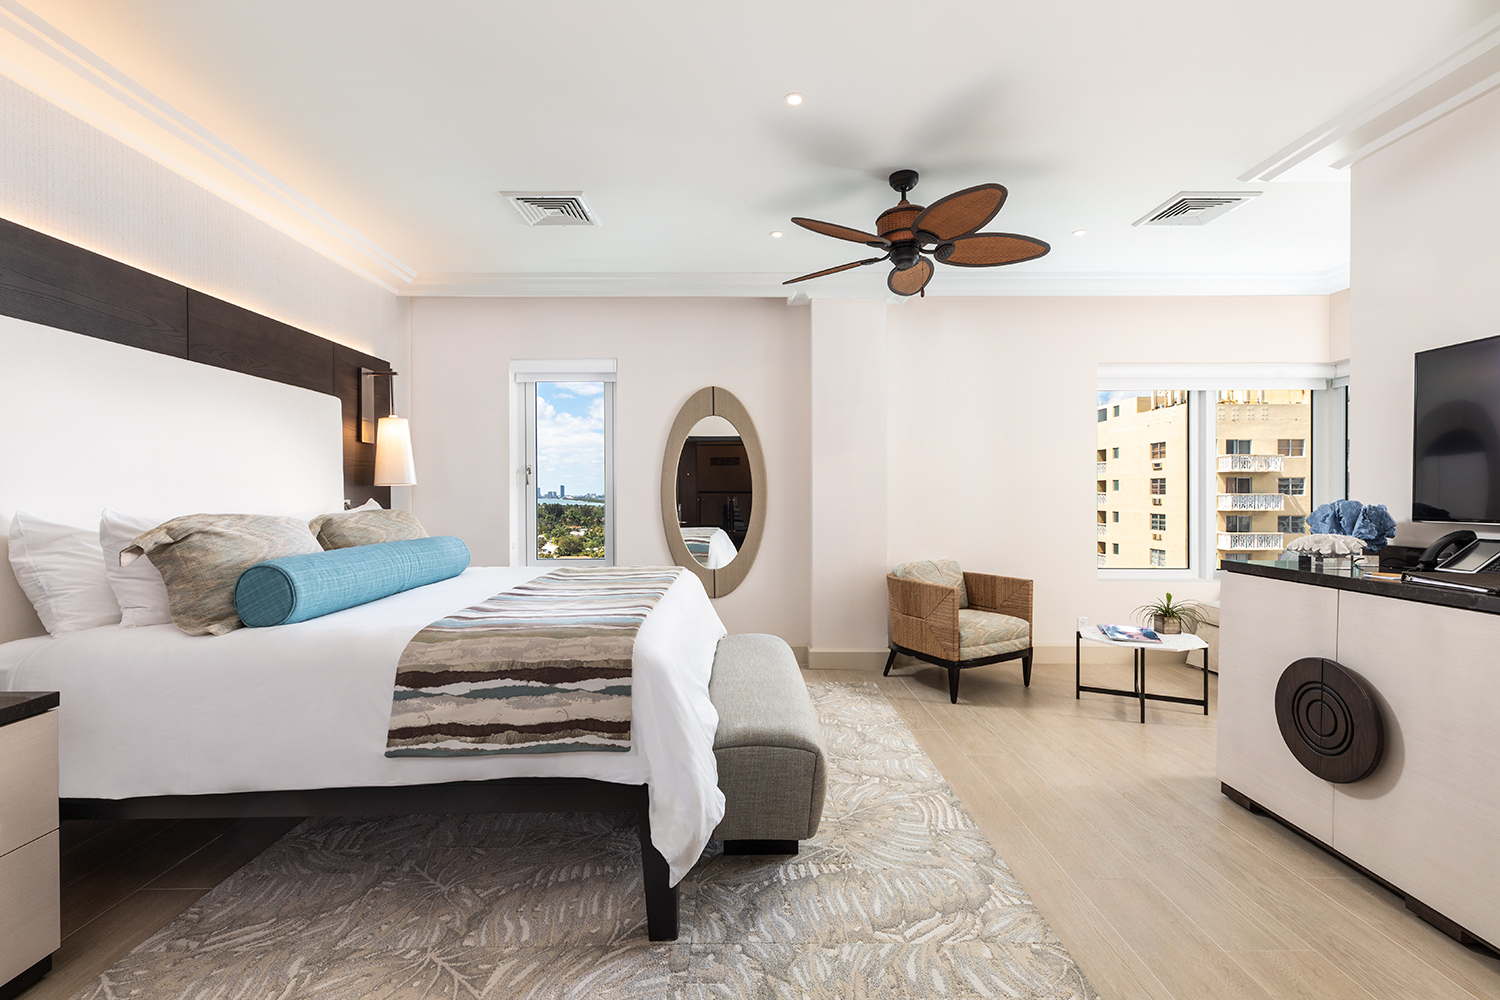 The-Palms-Hotel-March-2019-room-1203-01